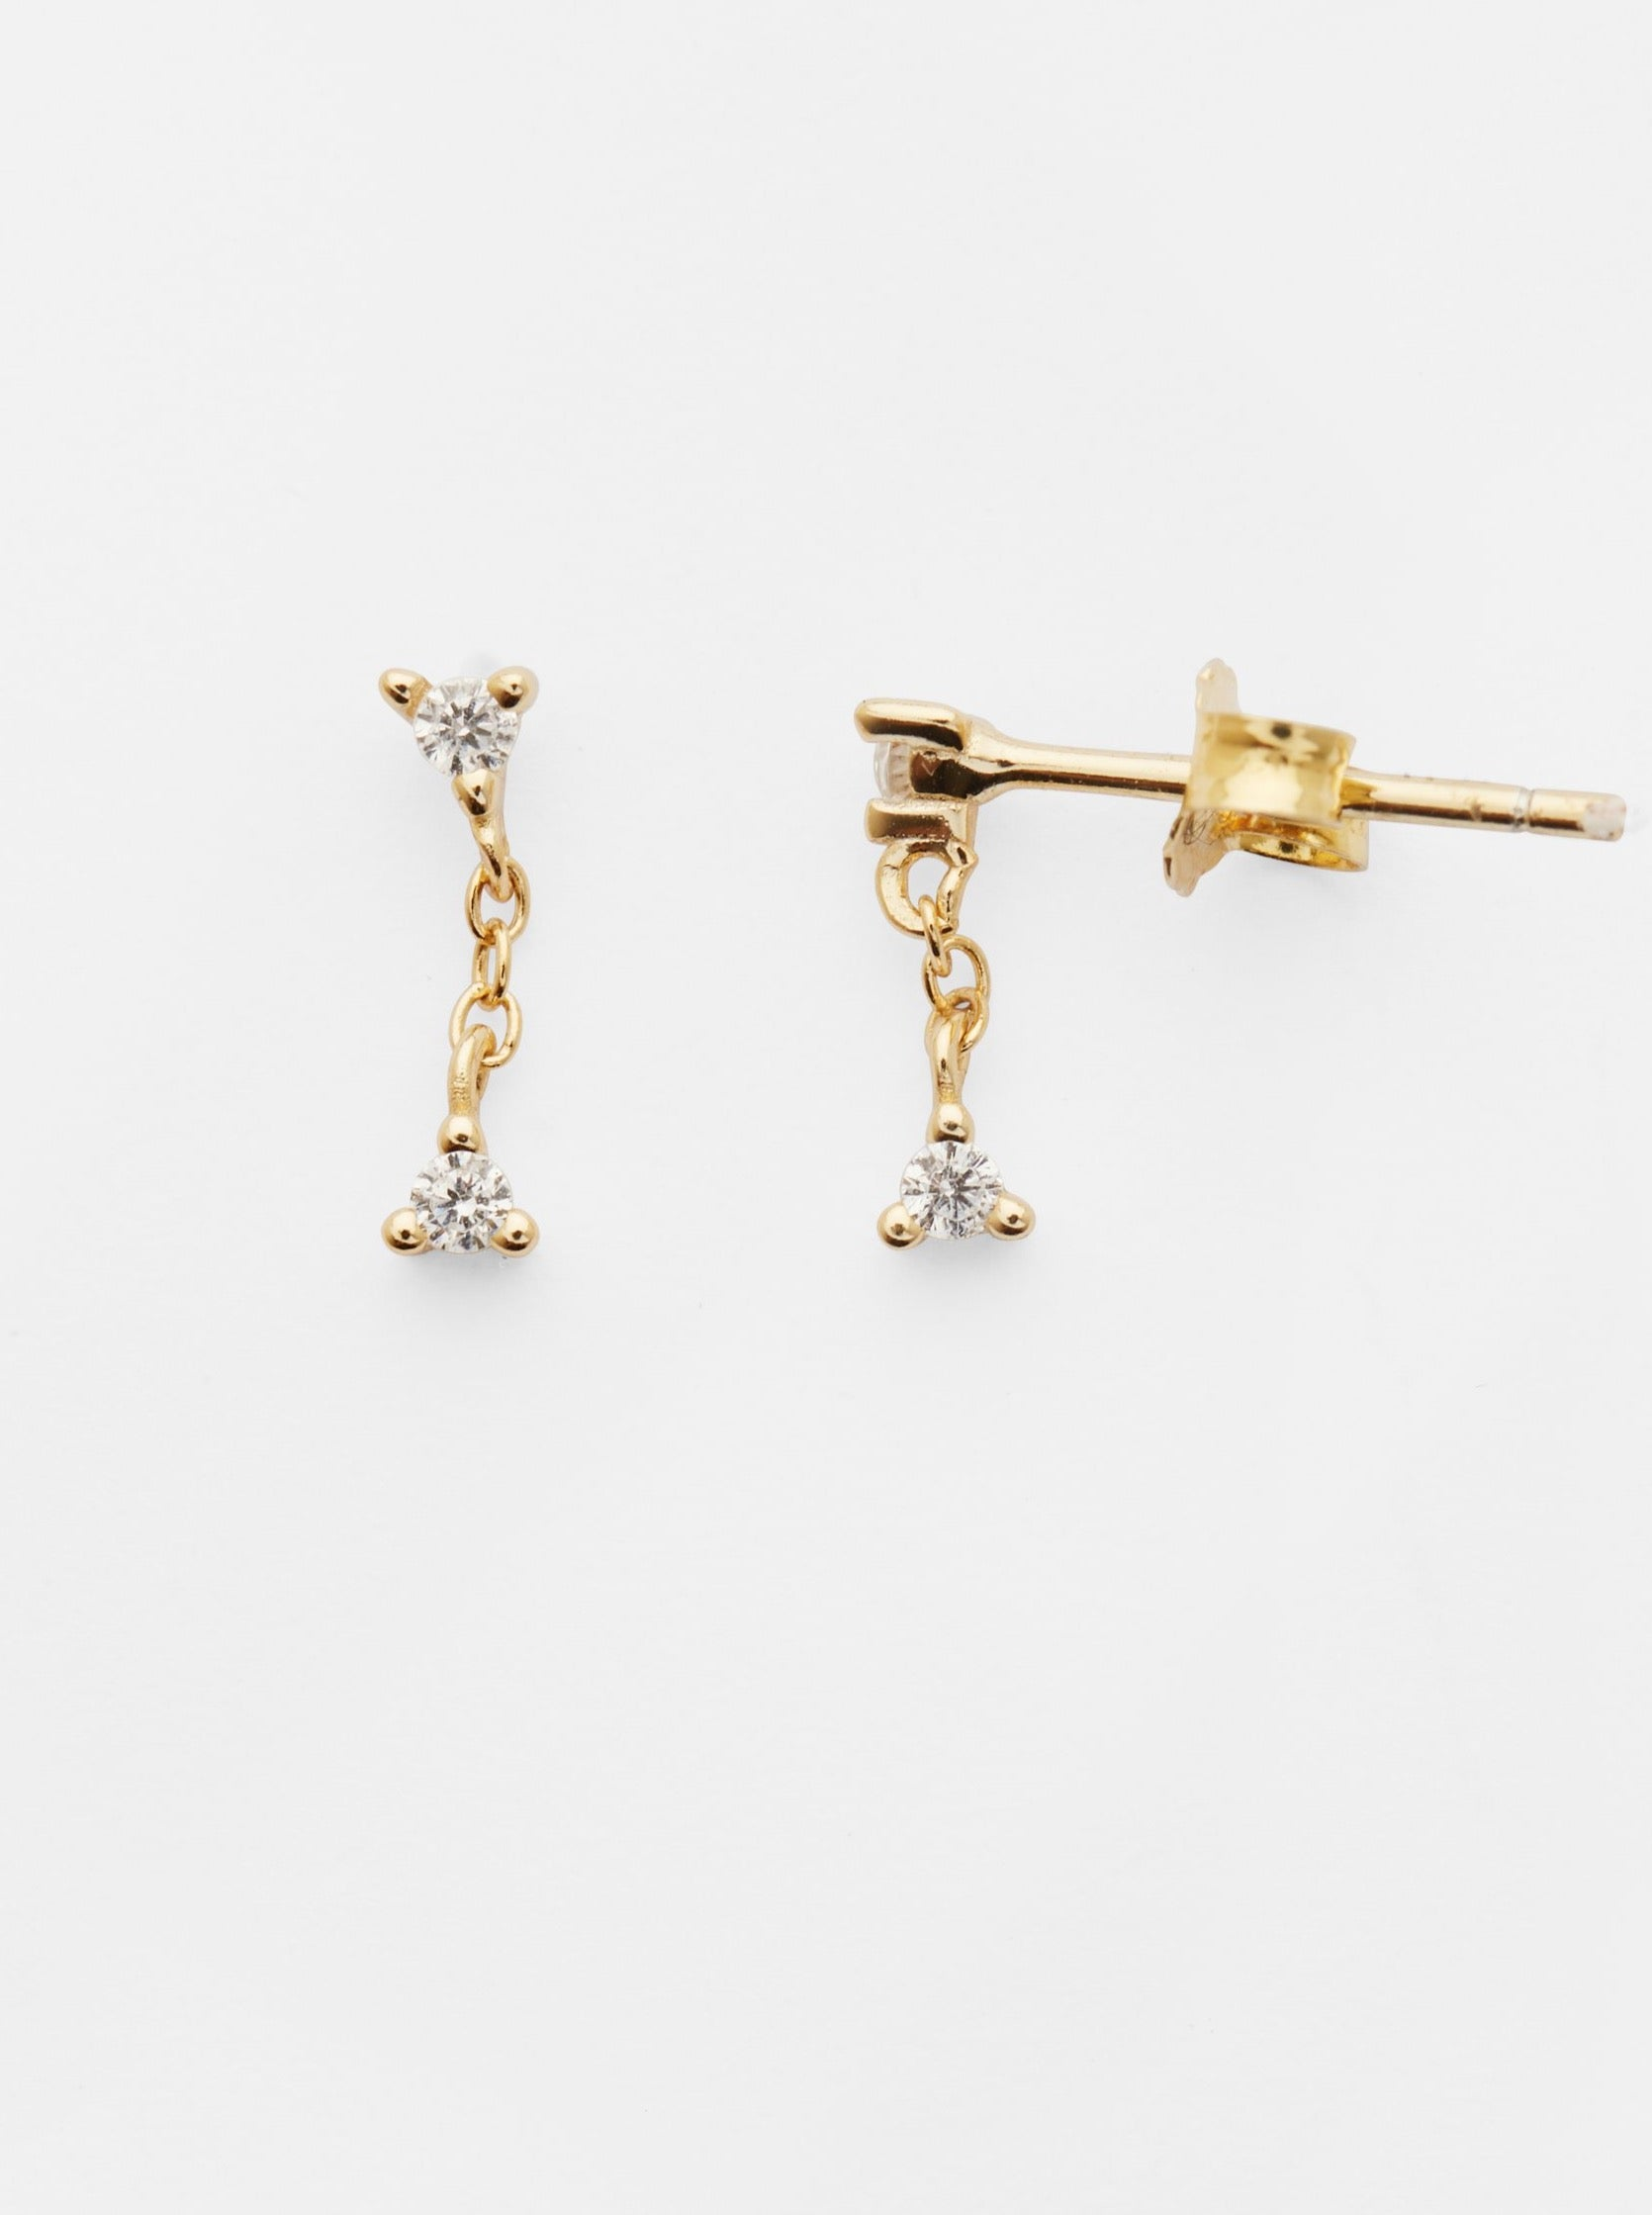 Reliquia Connected Earrings in 18CT Gold Filled